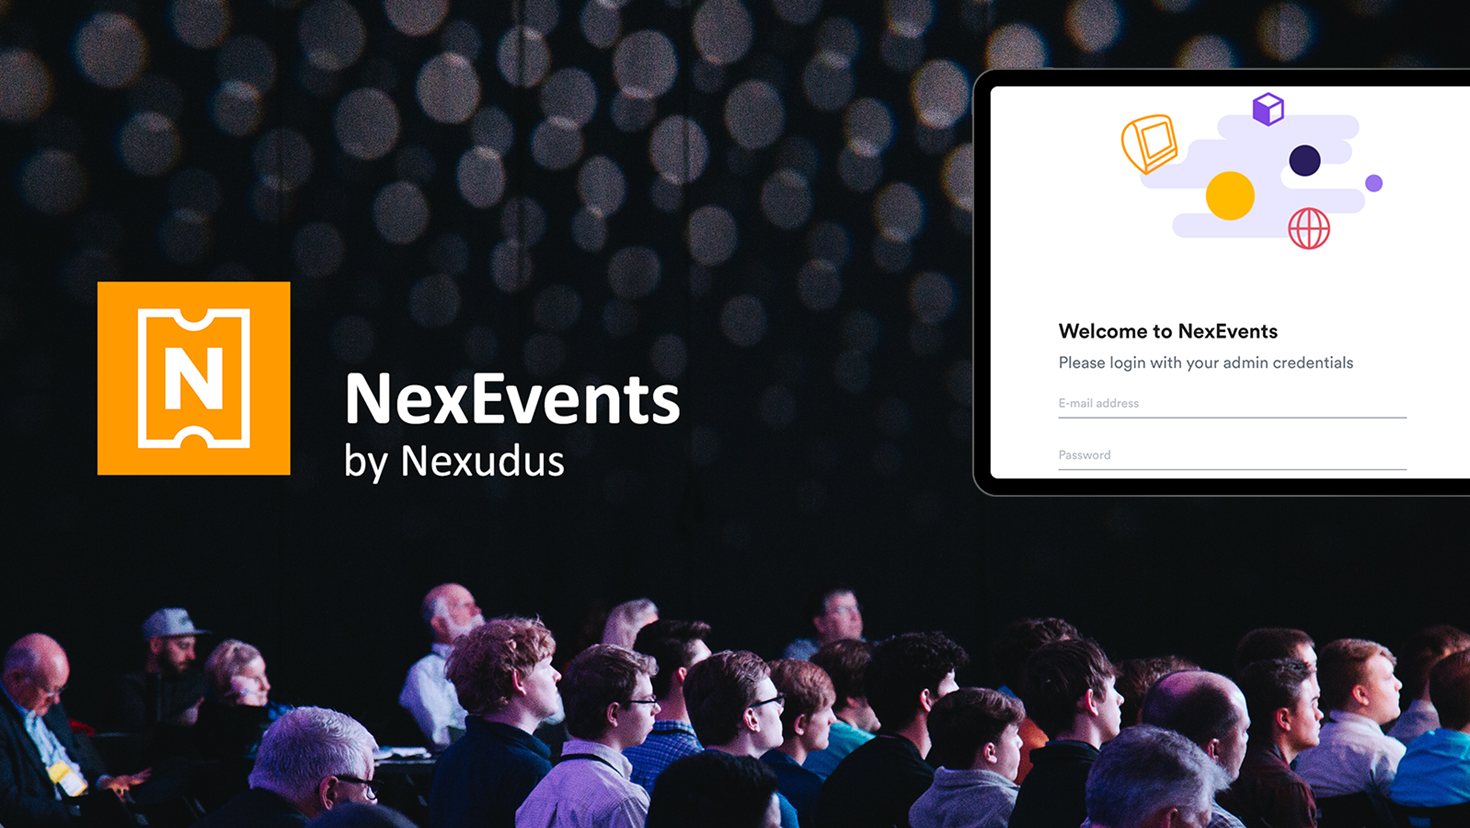 Want to speed up your events check-in process? Look no further than NexEvents.